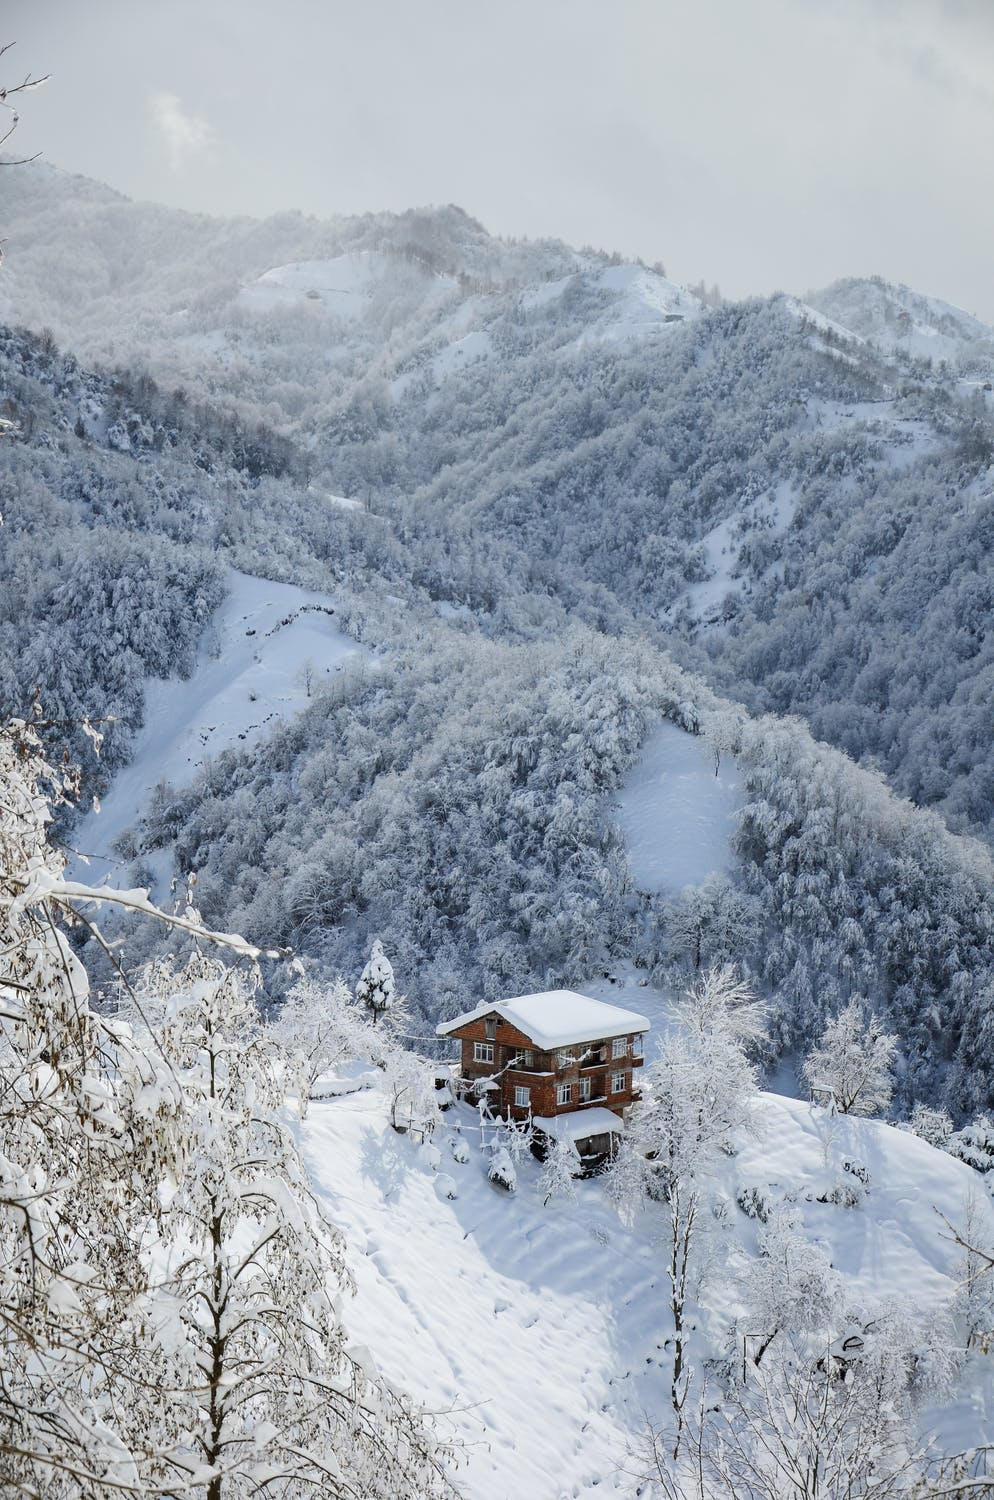 White winter wallpaper with snow and cottage, mountains and snow wallpaper